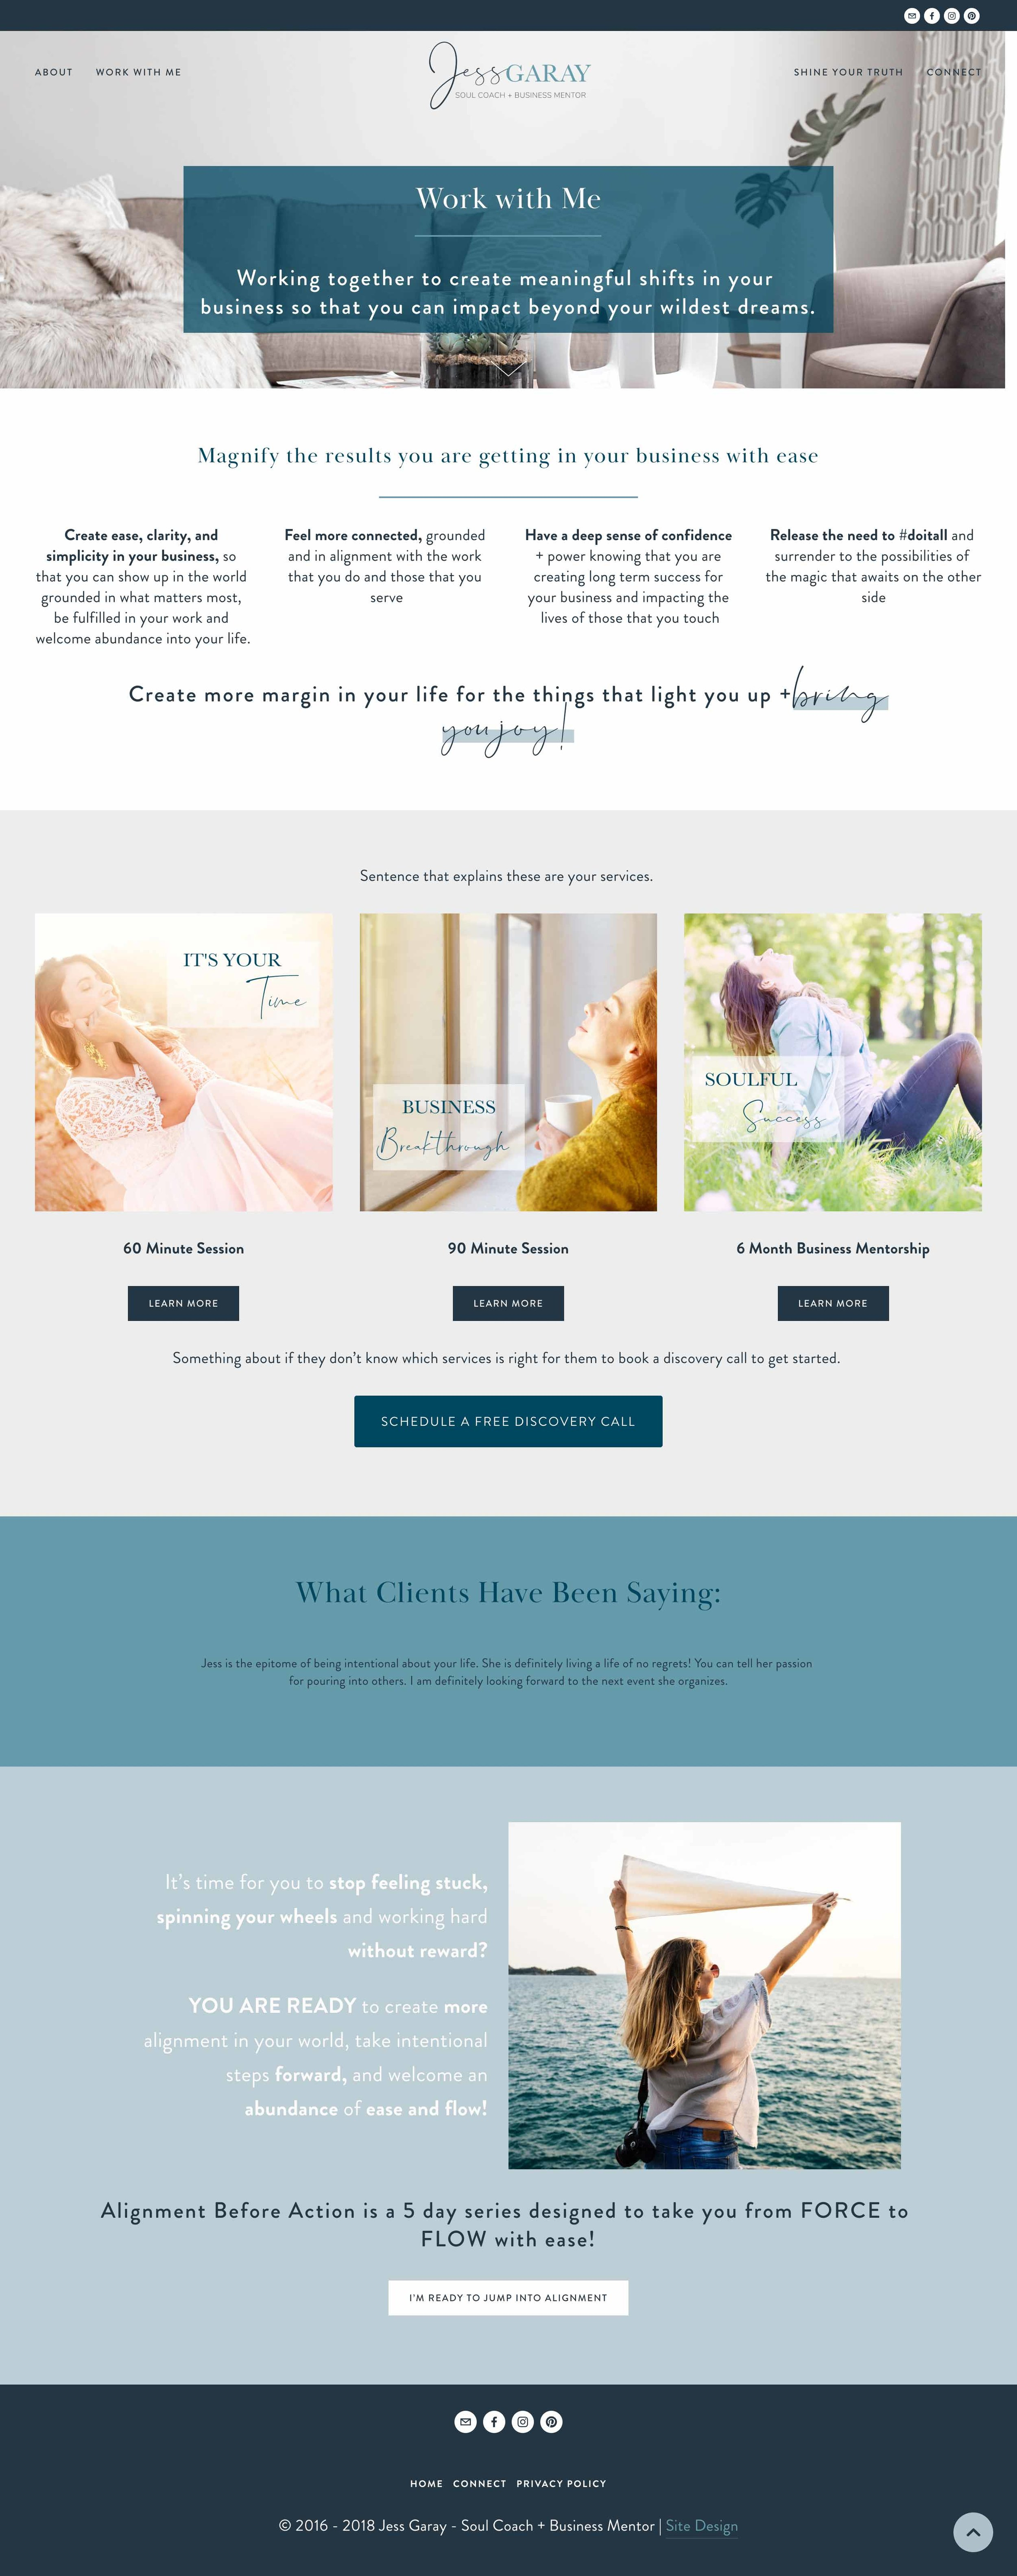 Custom Squarespace website design for business and life coaches by Alexander Design Co.jpg